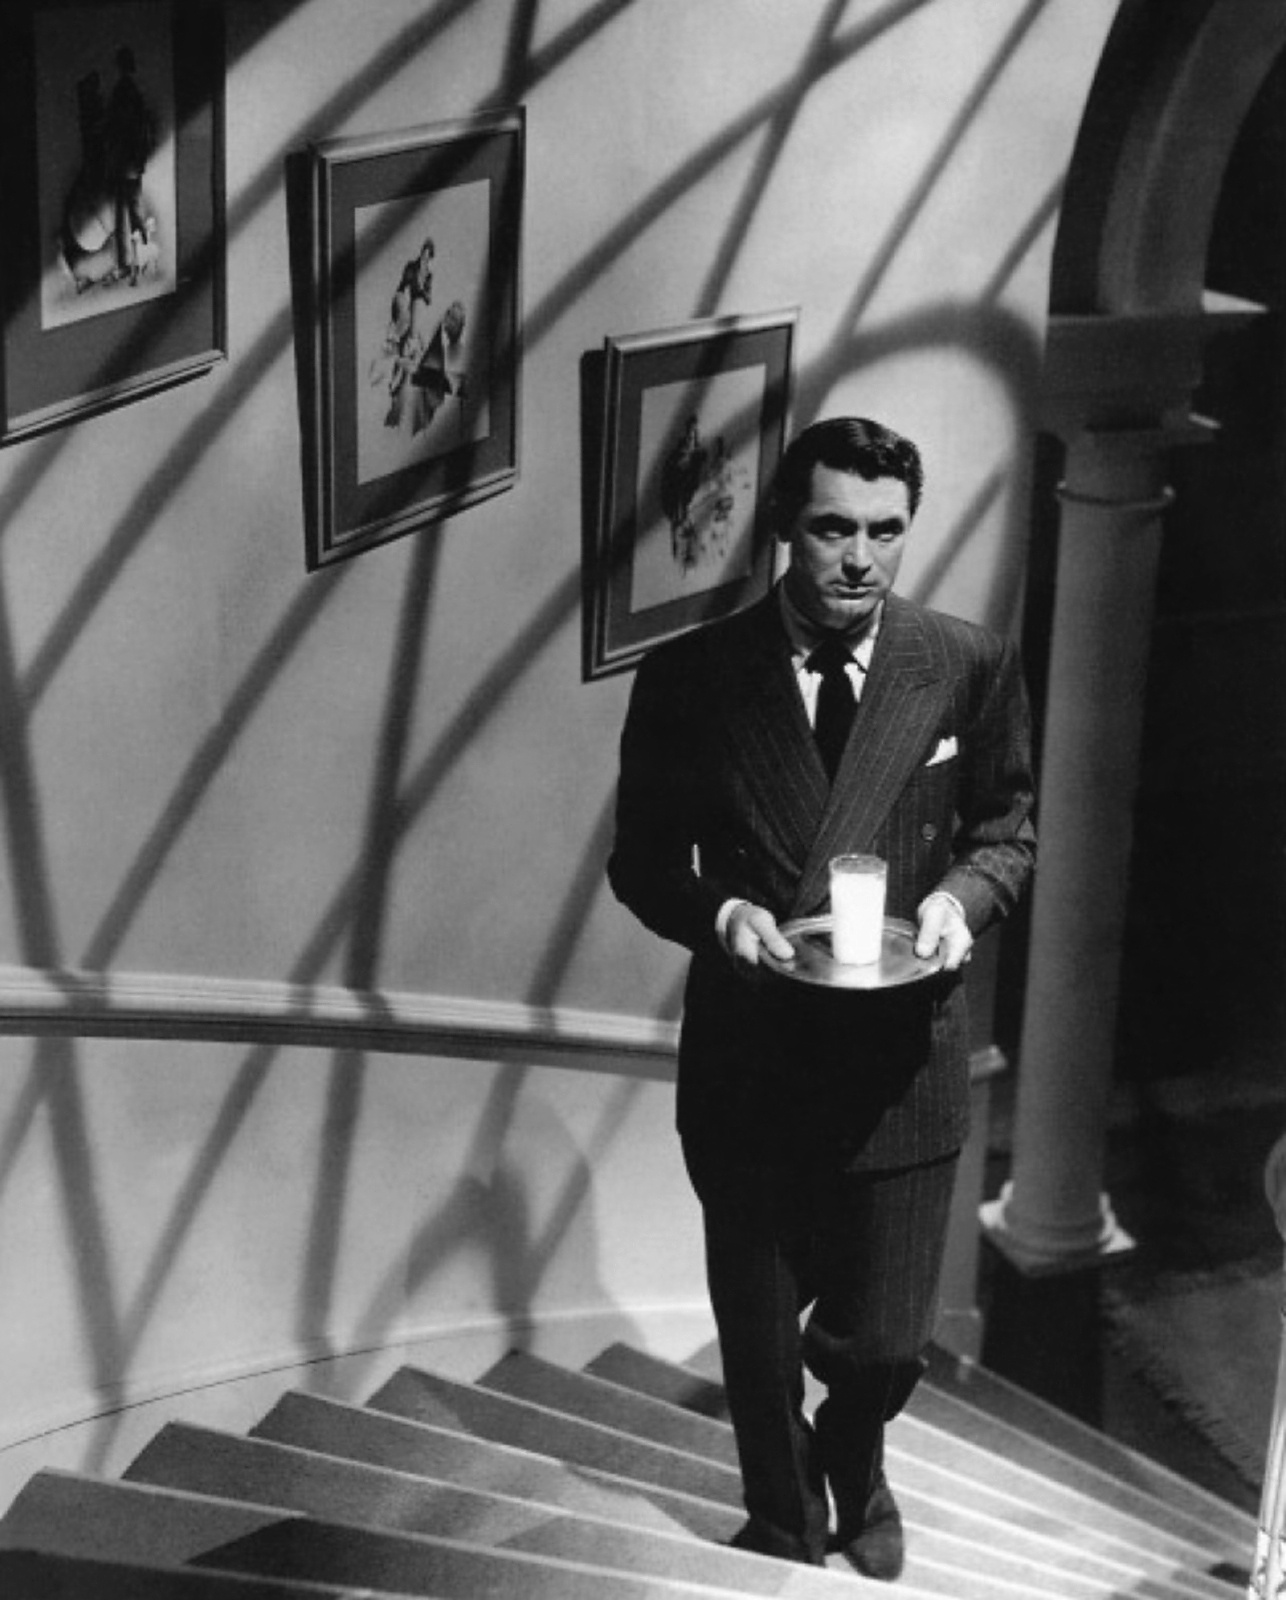 double side in the characters in the films notorious and shadow of a doubt by alfred hitchcock A prototype of hitchcock-brand storytelling, shadow of a doubt encapsulates what it means to be 'an alfred hitchcock film' through broad strokes and basic values sources: krohn, bill.